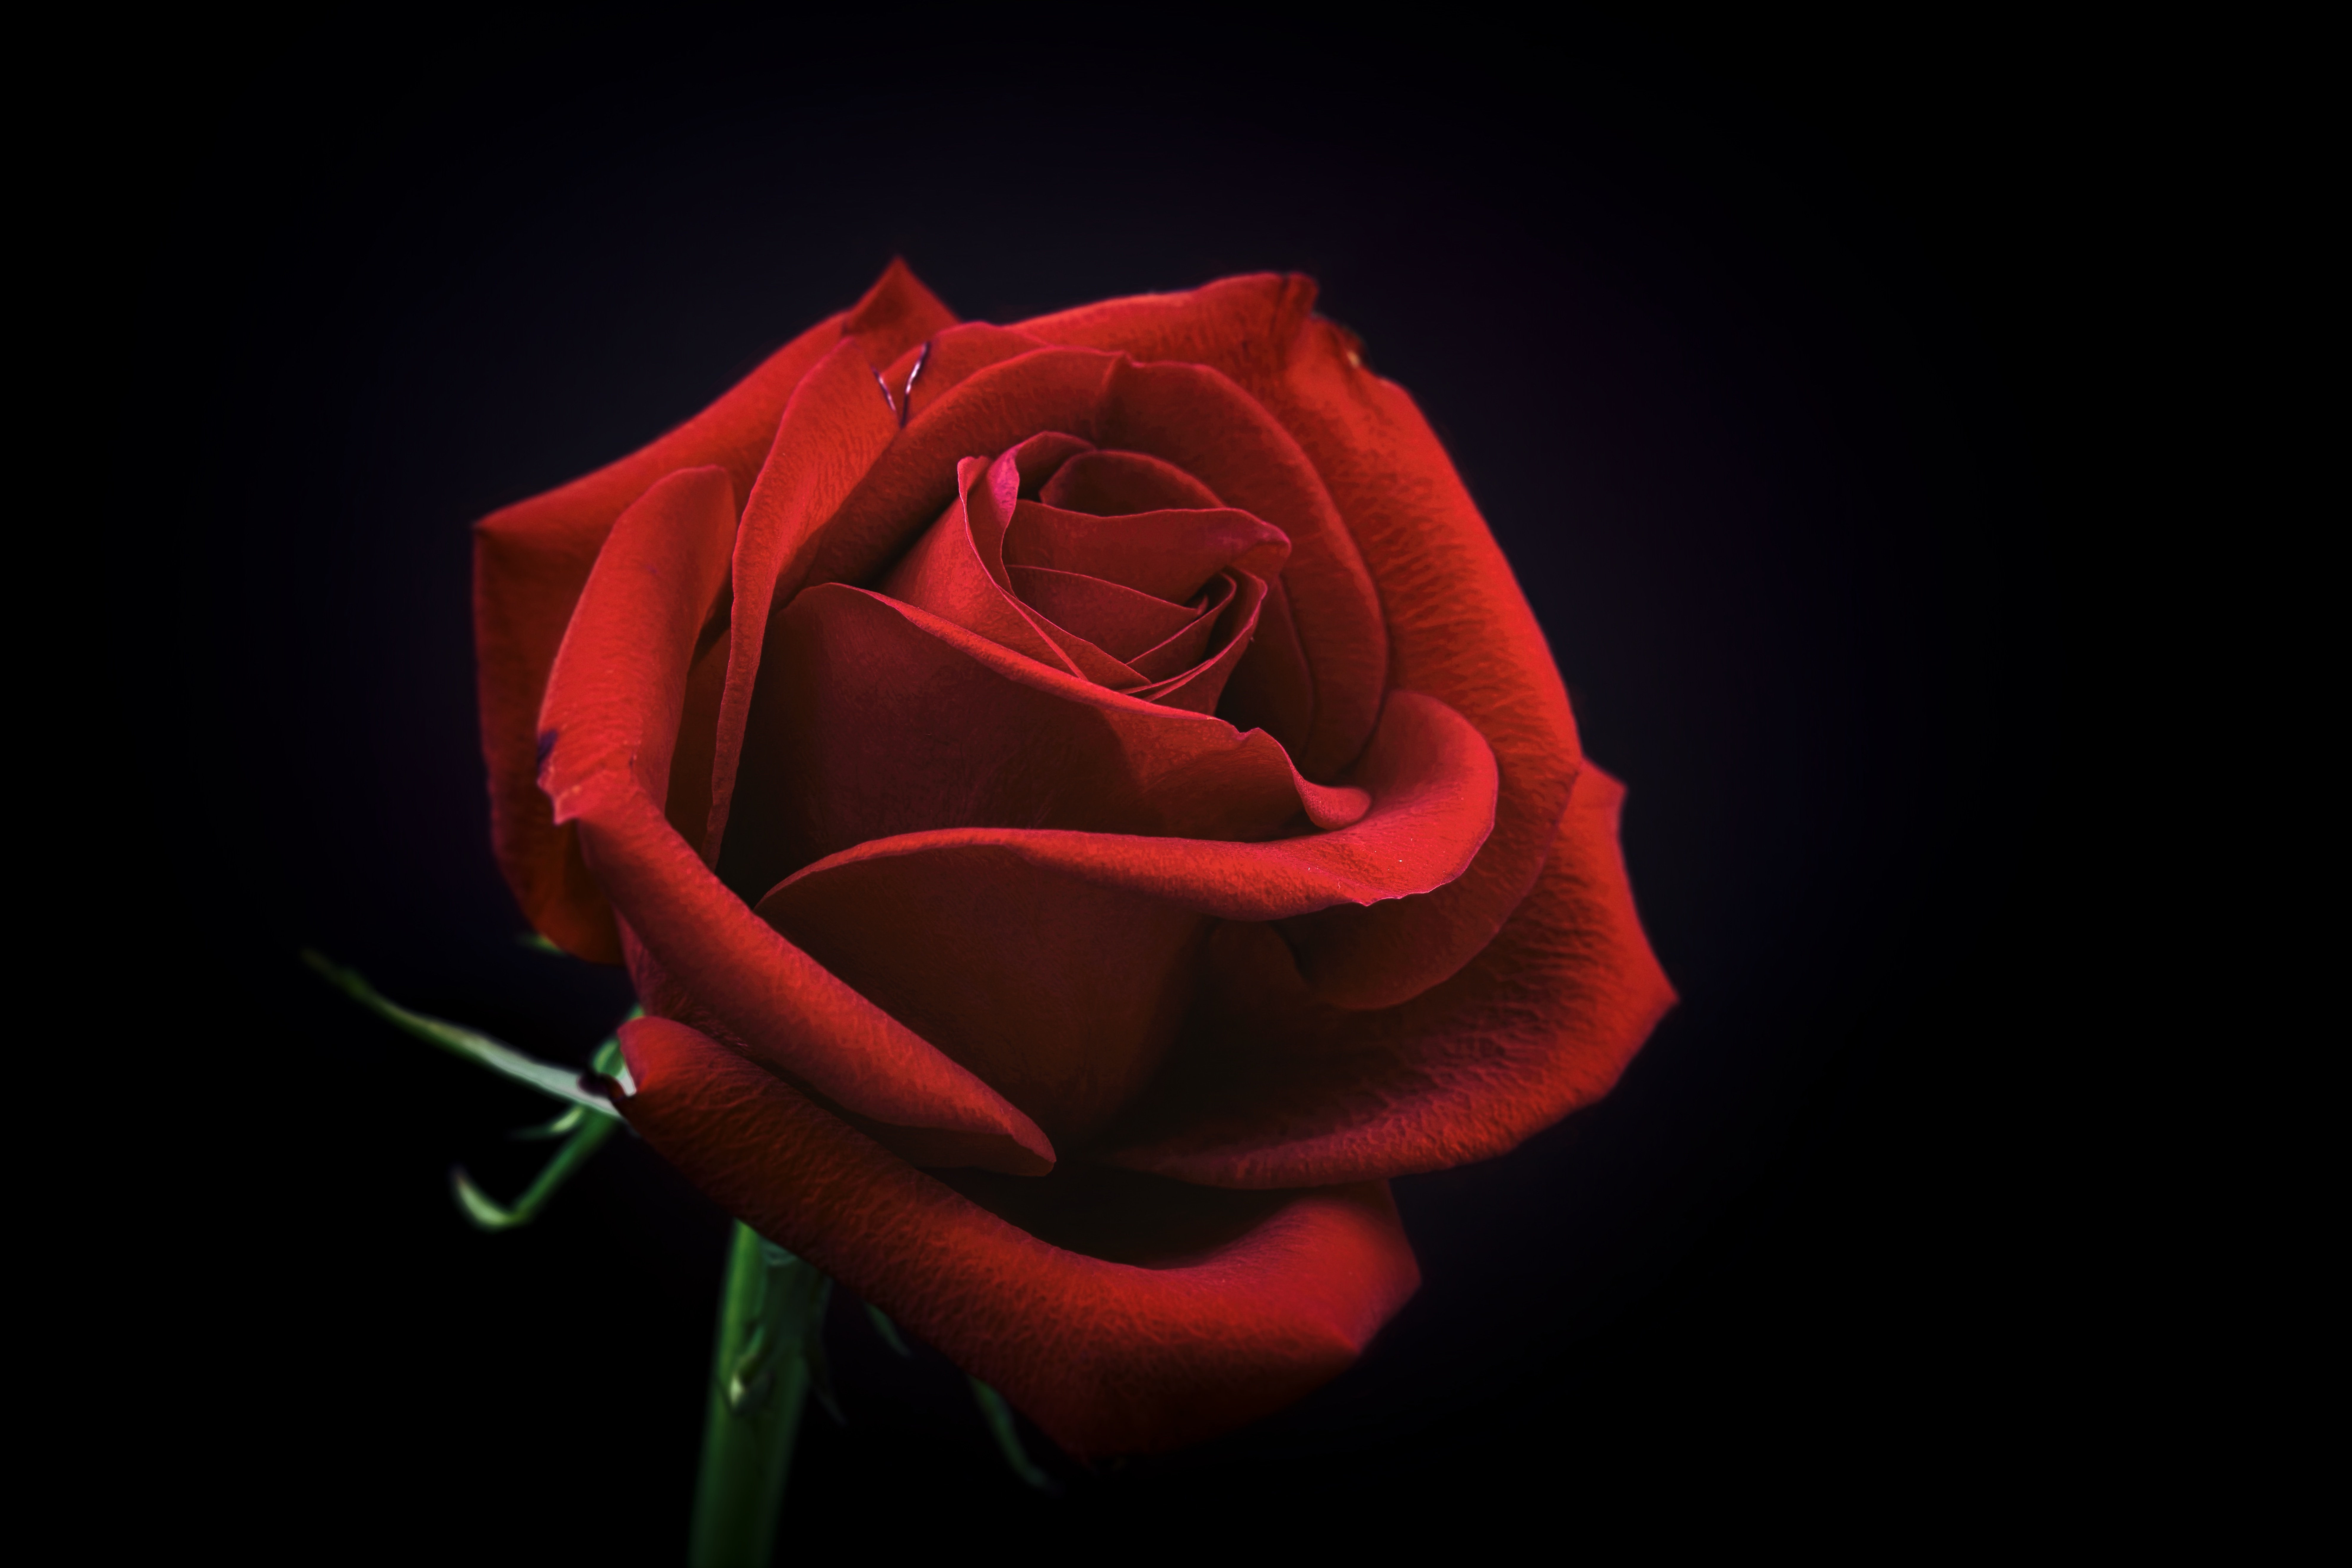 143560 download wallpaper Flowers, Rose Flower, Rose, Bud, Petals, Black Background screensavers and pictures for free